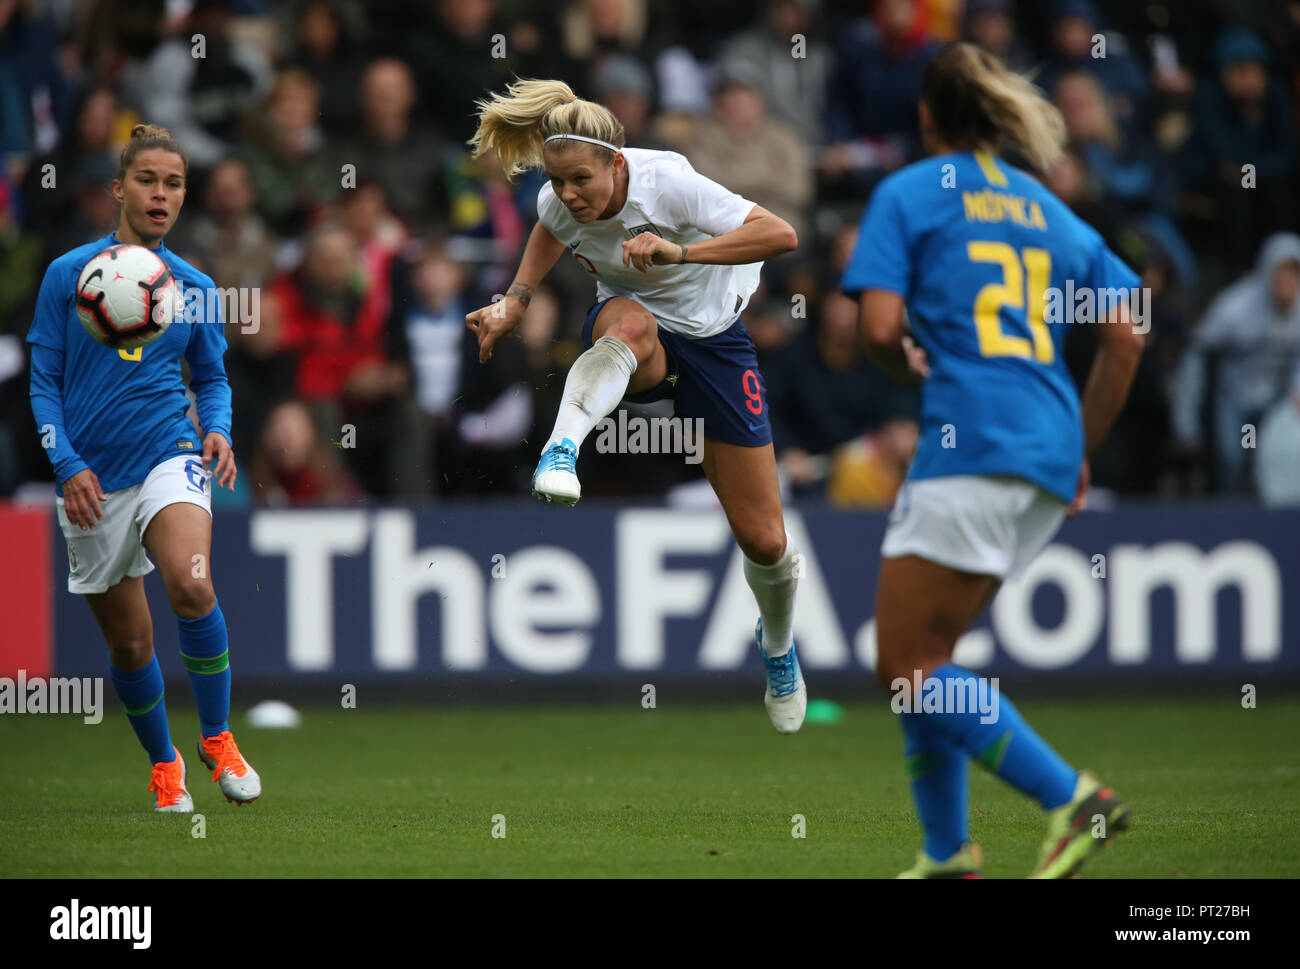 RACHEL DALY ENGLAND WOMEN V BRAZIL WOMEN ENGLAND WOMEN V BRAZIL WOMEN WOMENS  INTERNATIONAL 06 October 2018 GBD12320 STRICTLY EDITORIAL USE ONLY. 04d7053bc